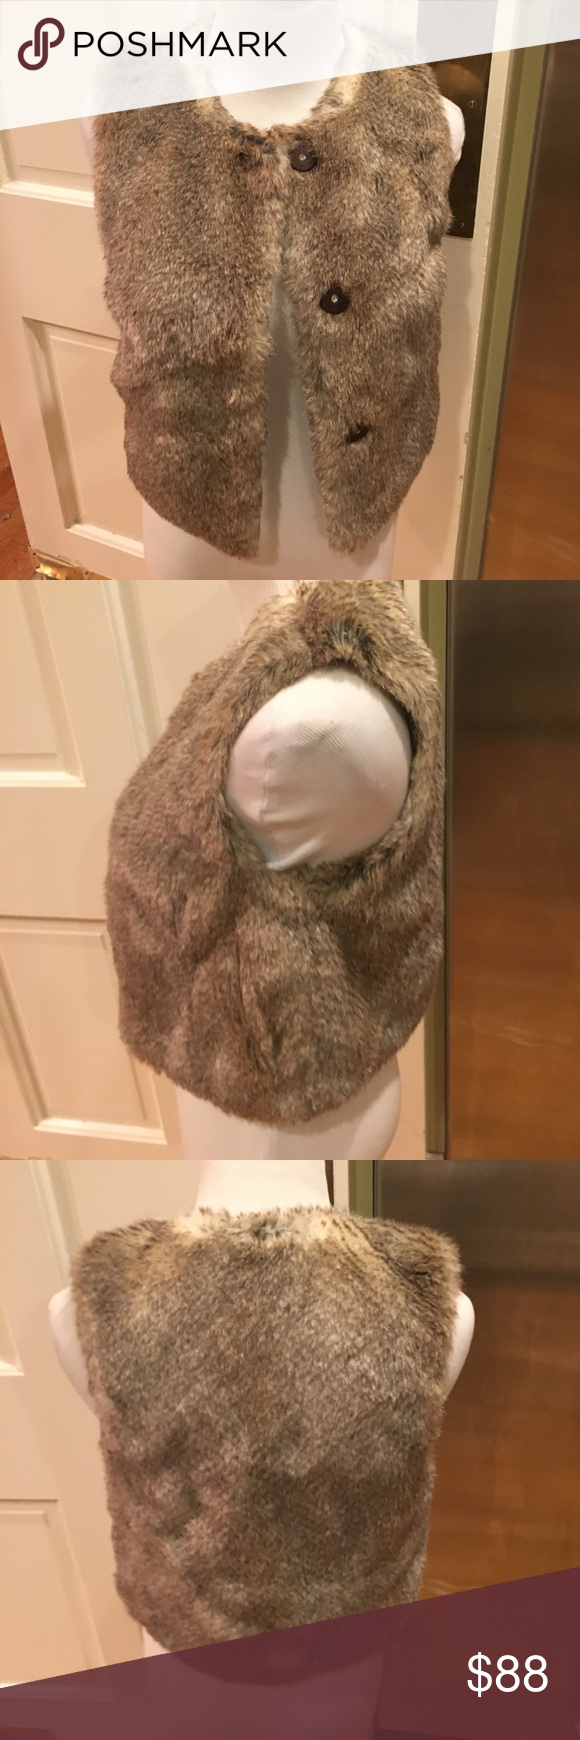 NWOT Juicy Couture Faux Fur Snap Up 2 pocket Vest Size P, fits 00-2. It has 3 front snaps, 2 side pockets and feels like REAL soft comfy fur! Juicy Couture Jackets & Coats Vests